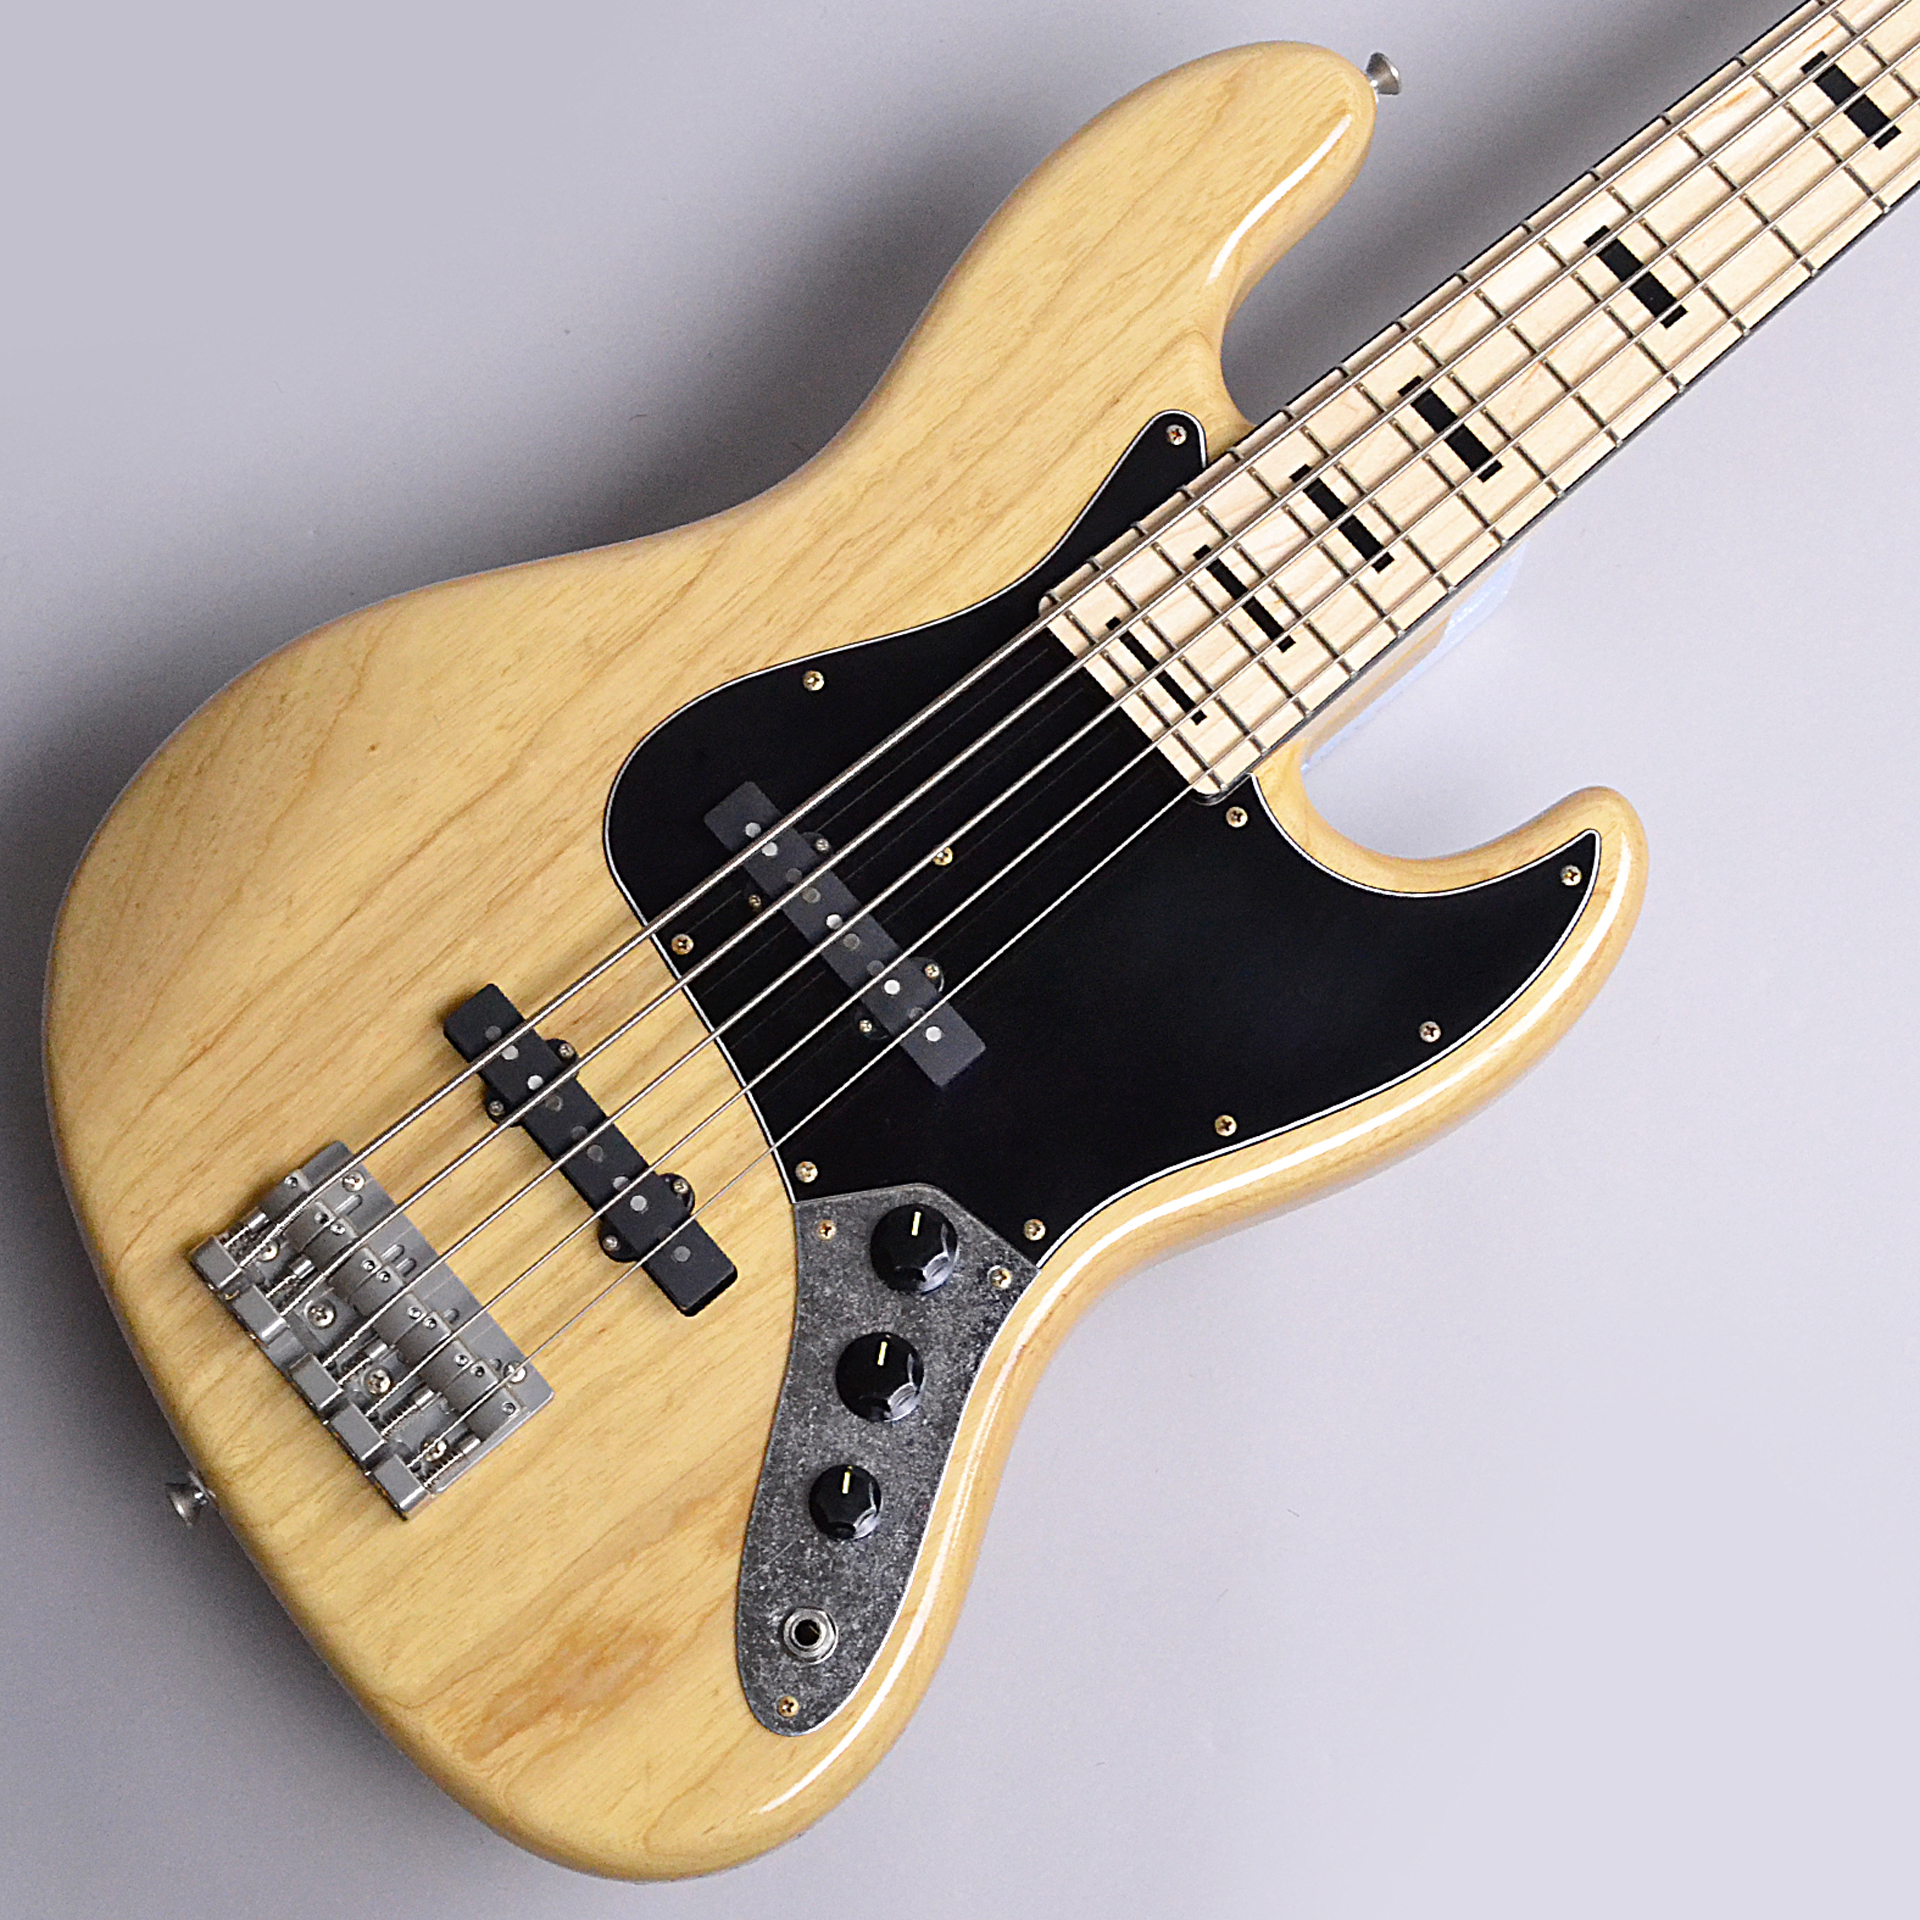 HR-BJ5/M Ash Natural Rugged Finished Looks Like Oldのボディトップ-アップ画像